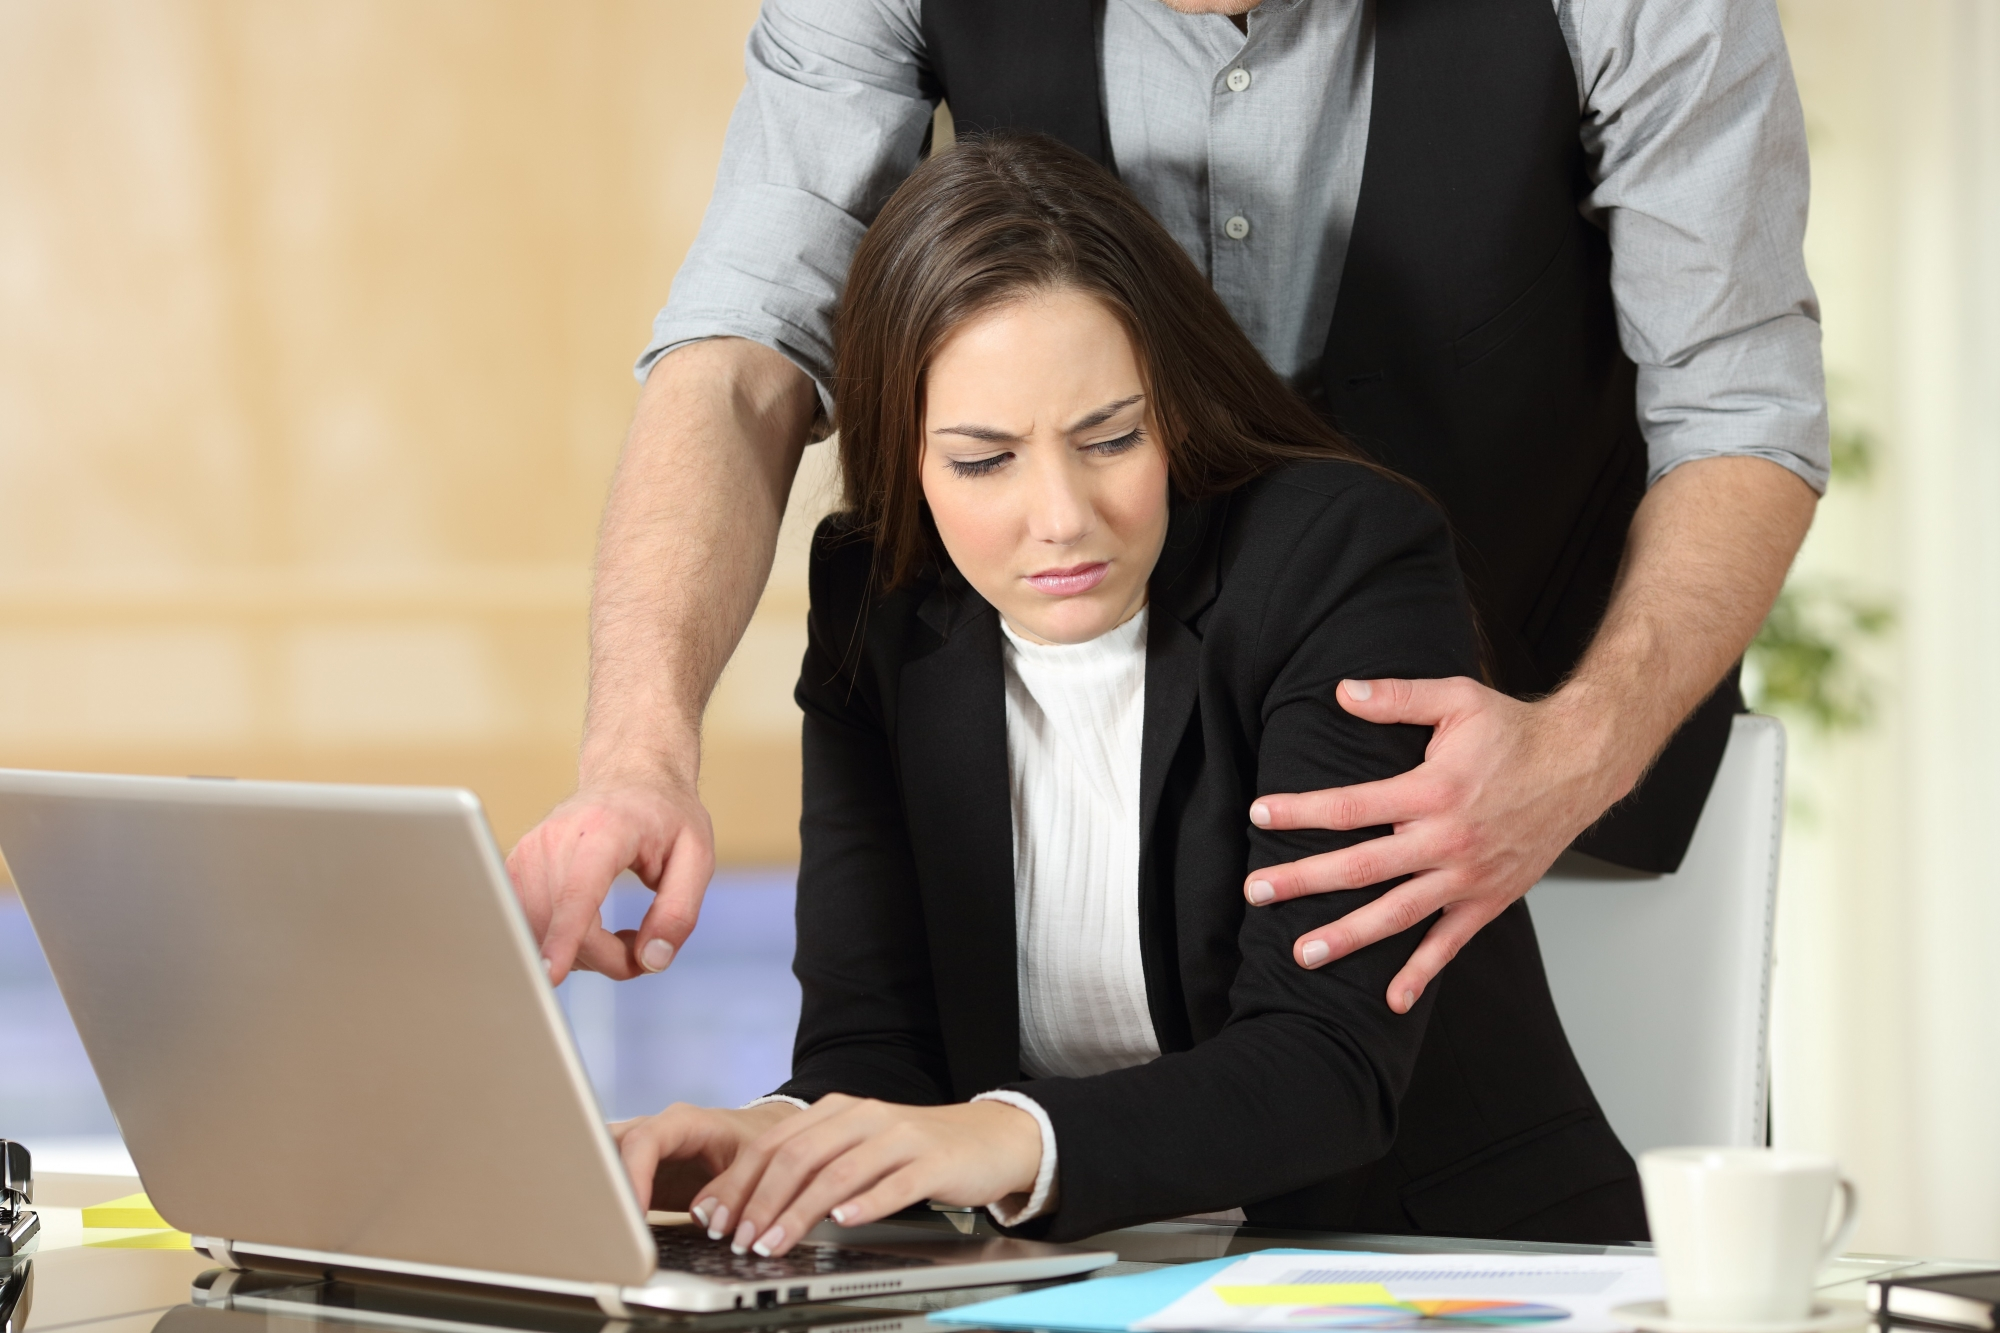 Sexual Harassment Lawyer in Virginia Beach, VA